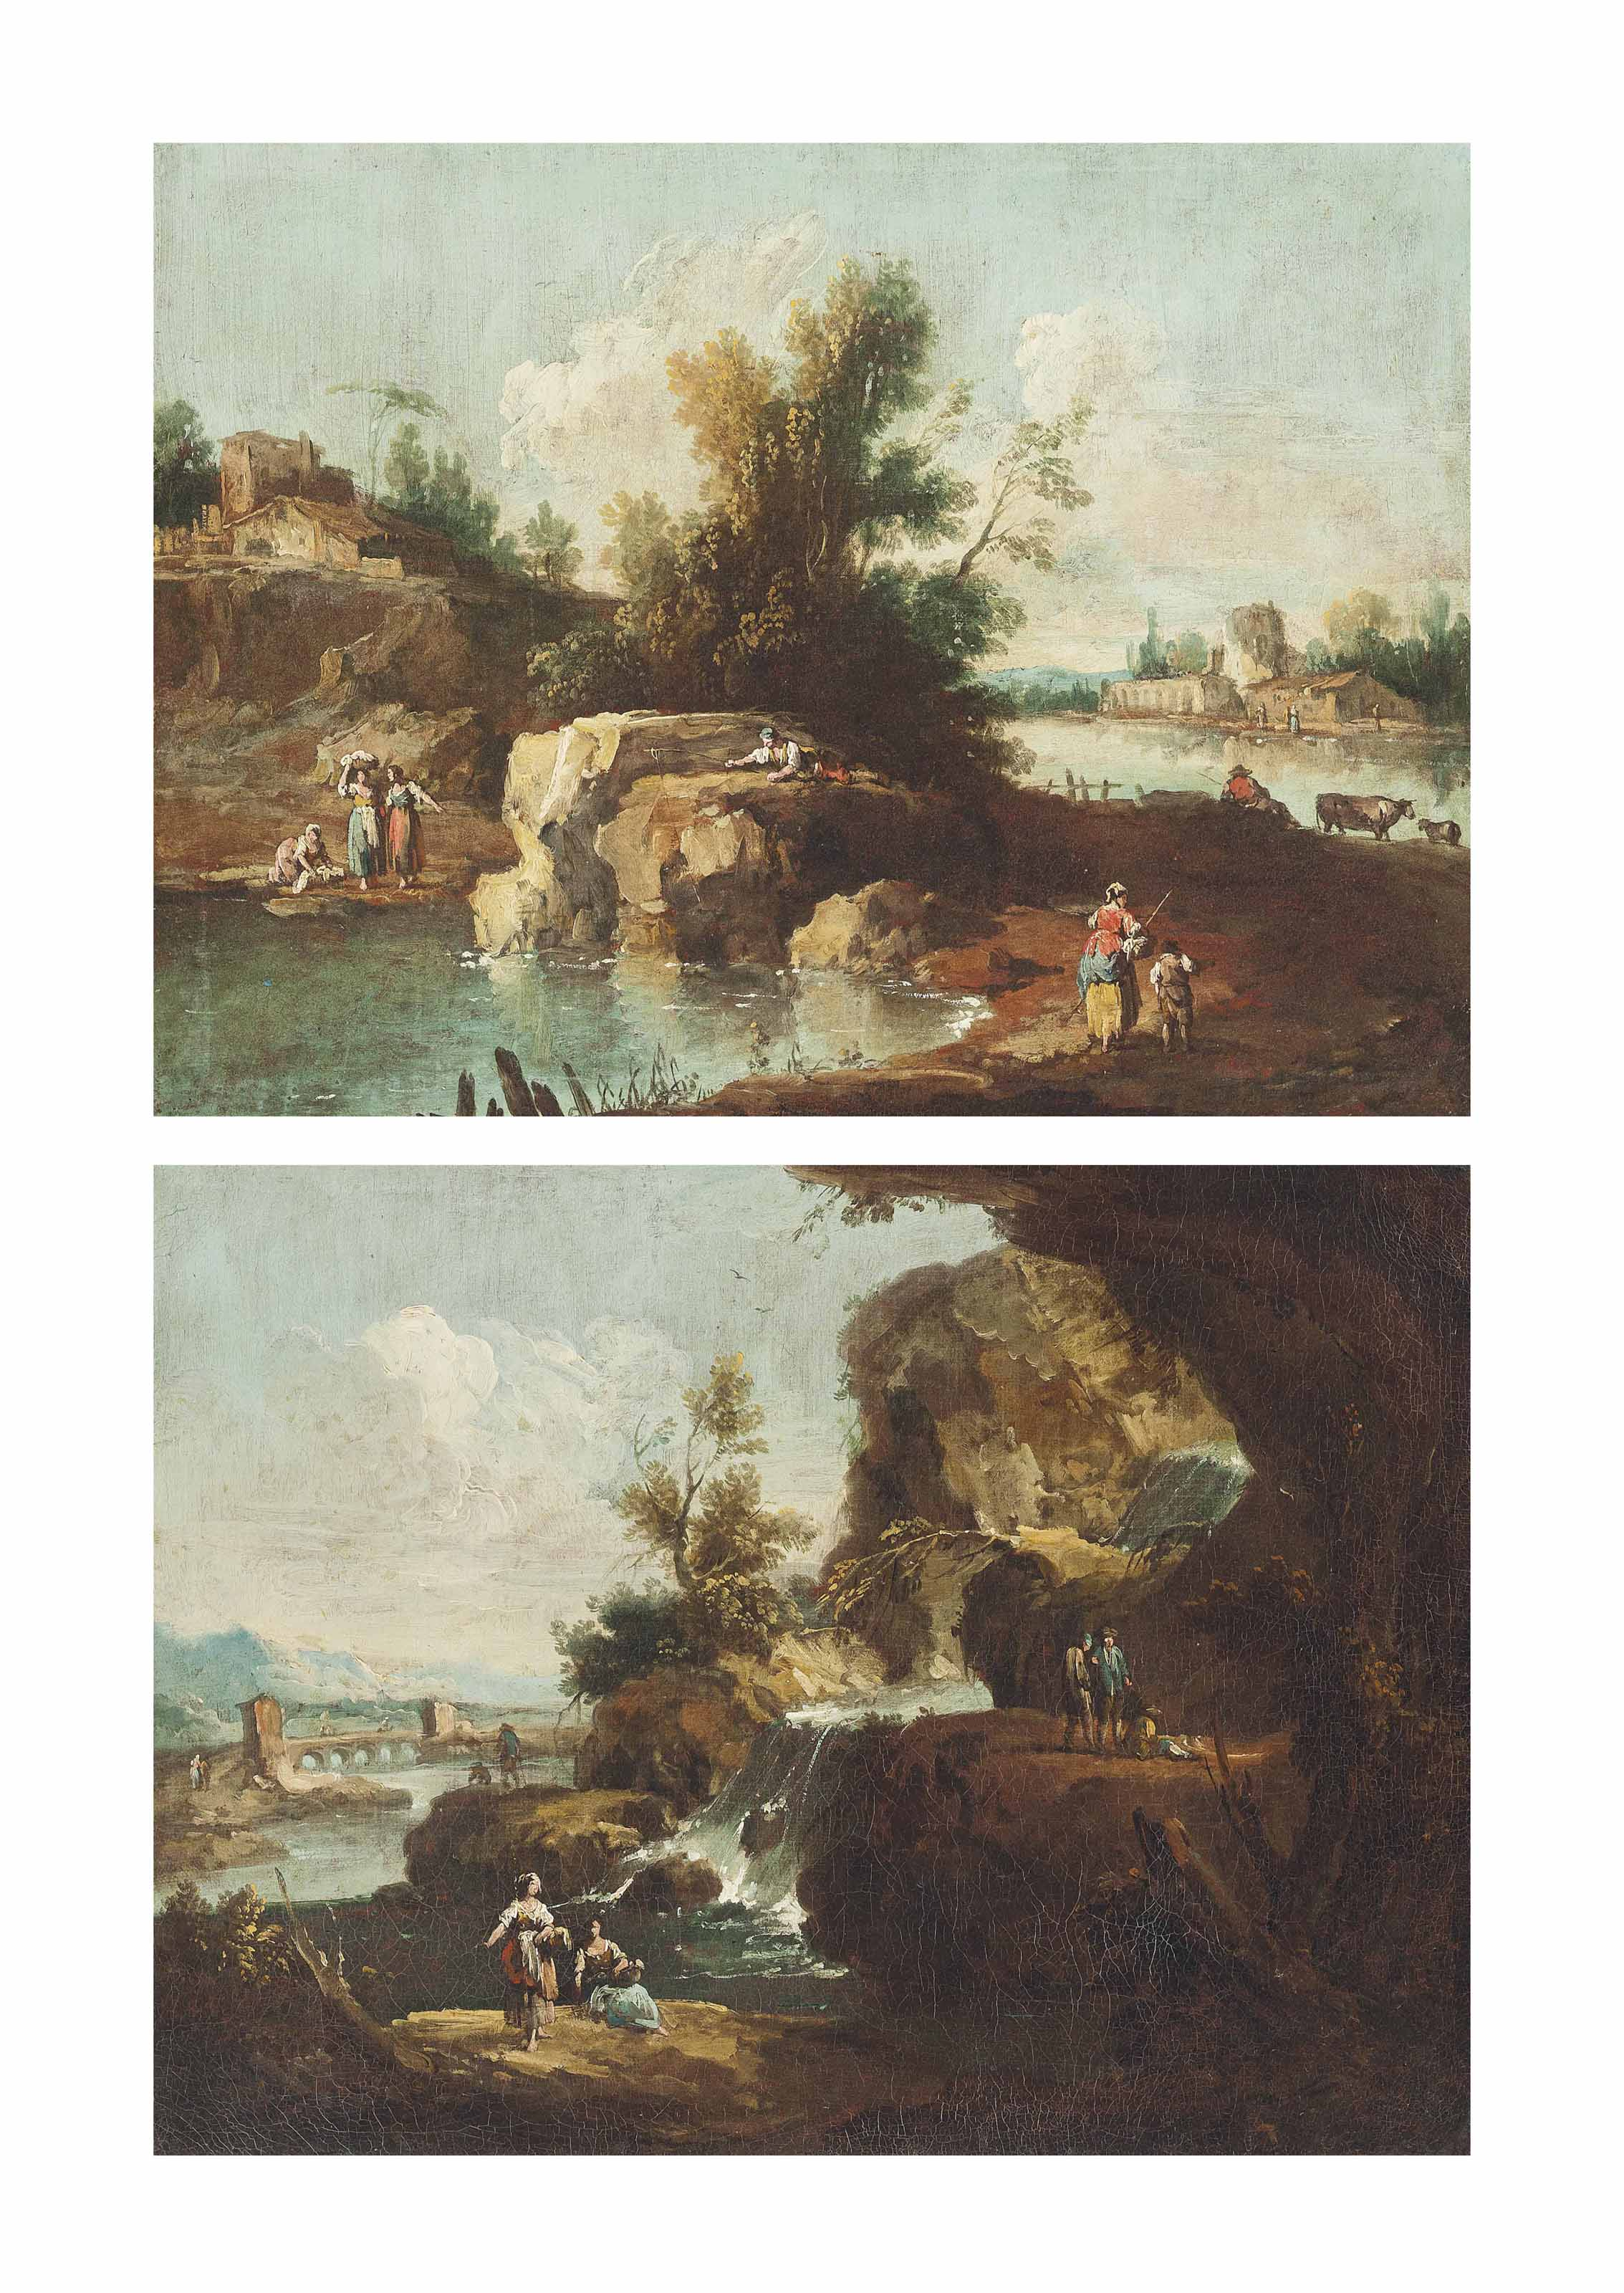 A river landscape with travellers, fishermen, washerwomen and other figures on the banks; and A river landscape with washerwomen and other figures near a waterfall, a bridge beyond